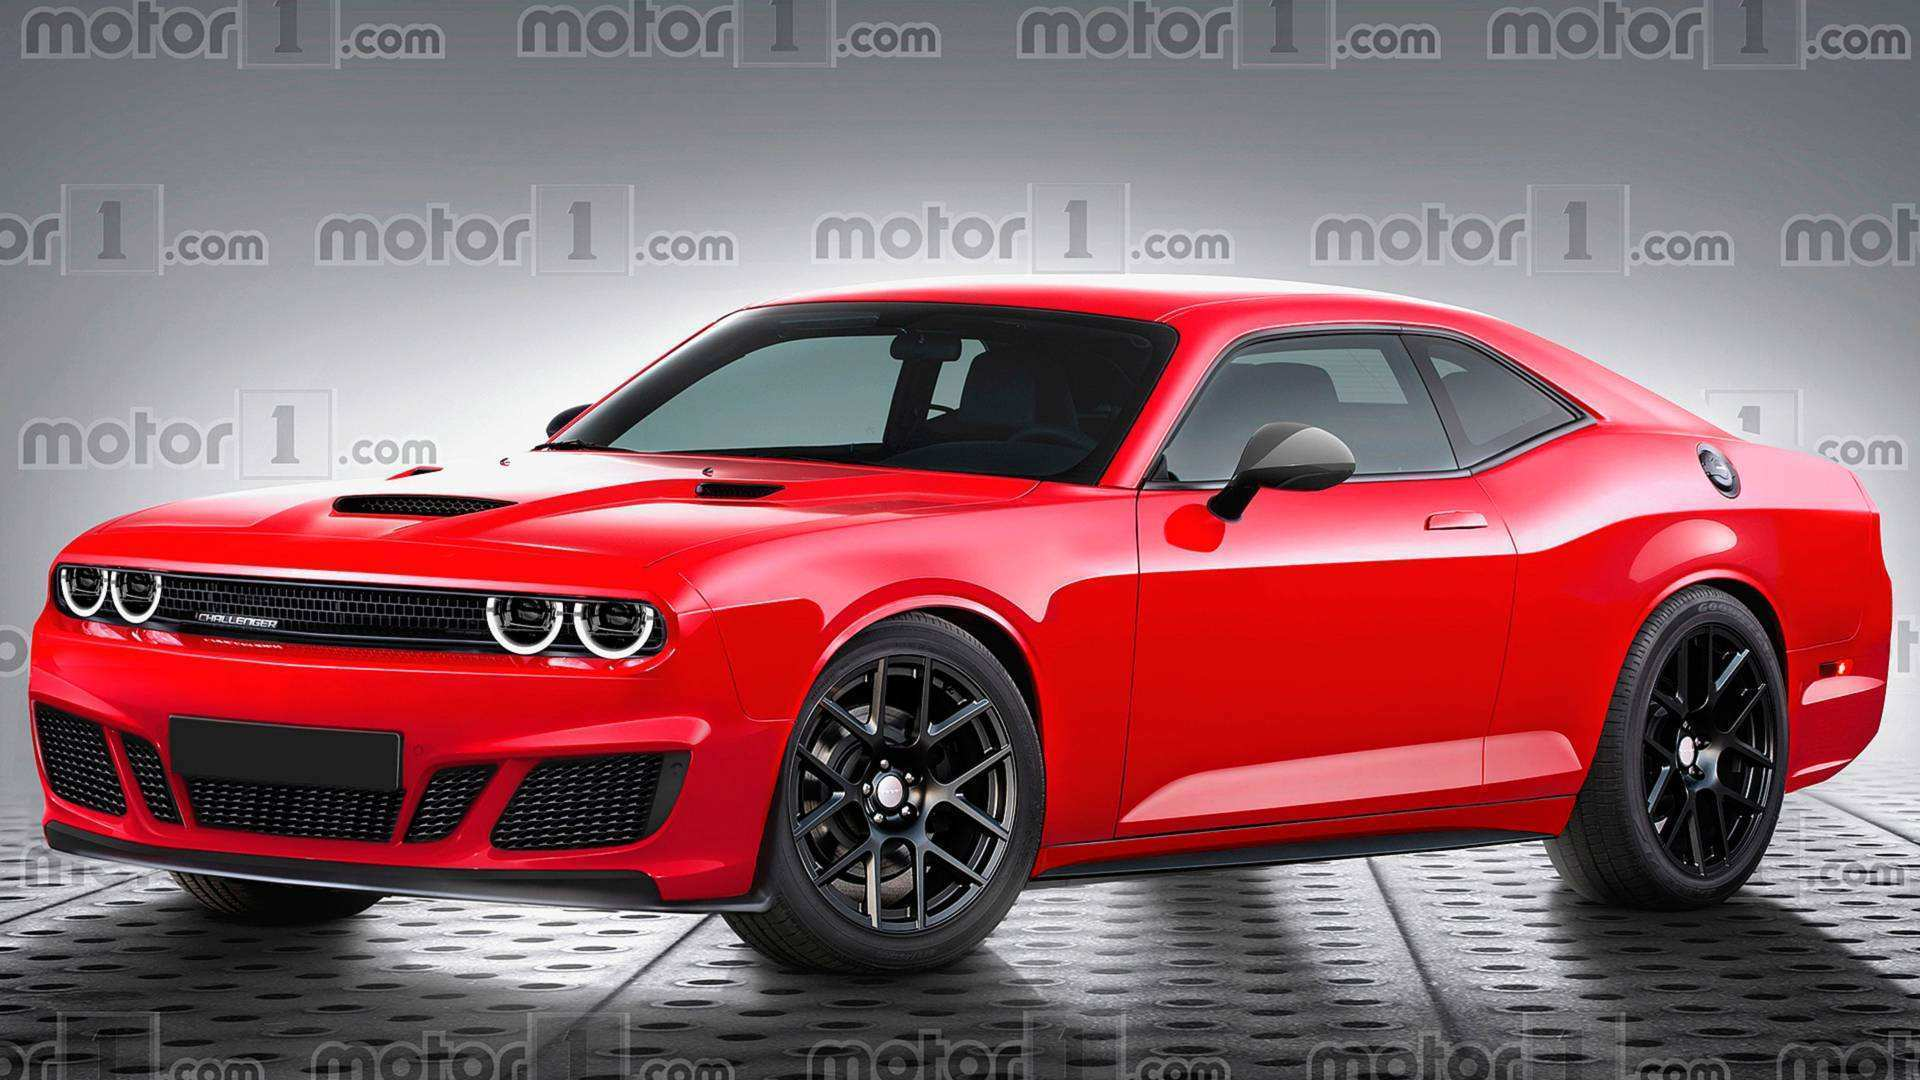 58 The Best 2020 Dodge Challenger Srt Review And Release Date